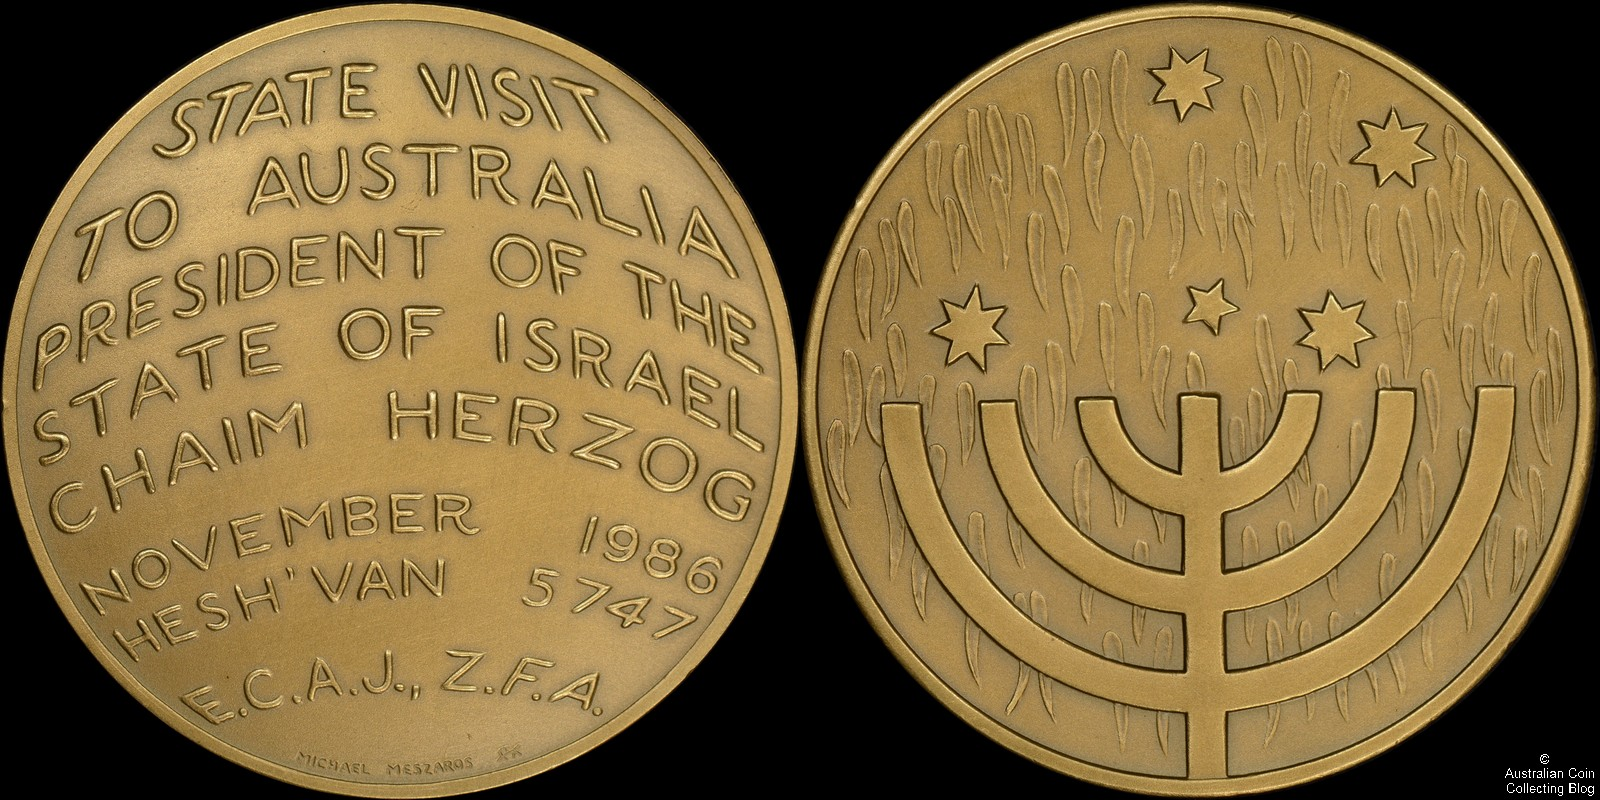 1986 State Visit to Australia of the President of the State of Israel Medal